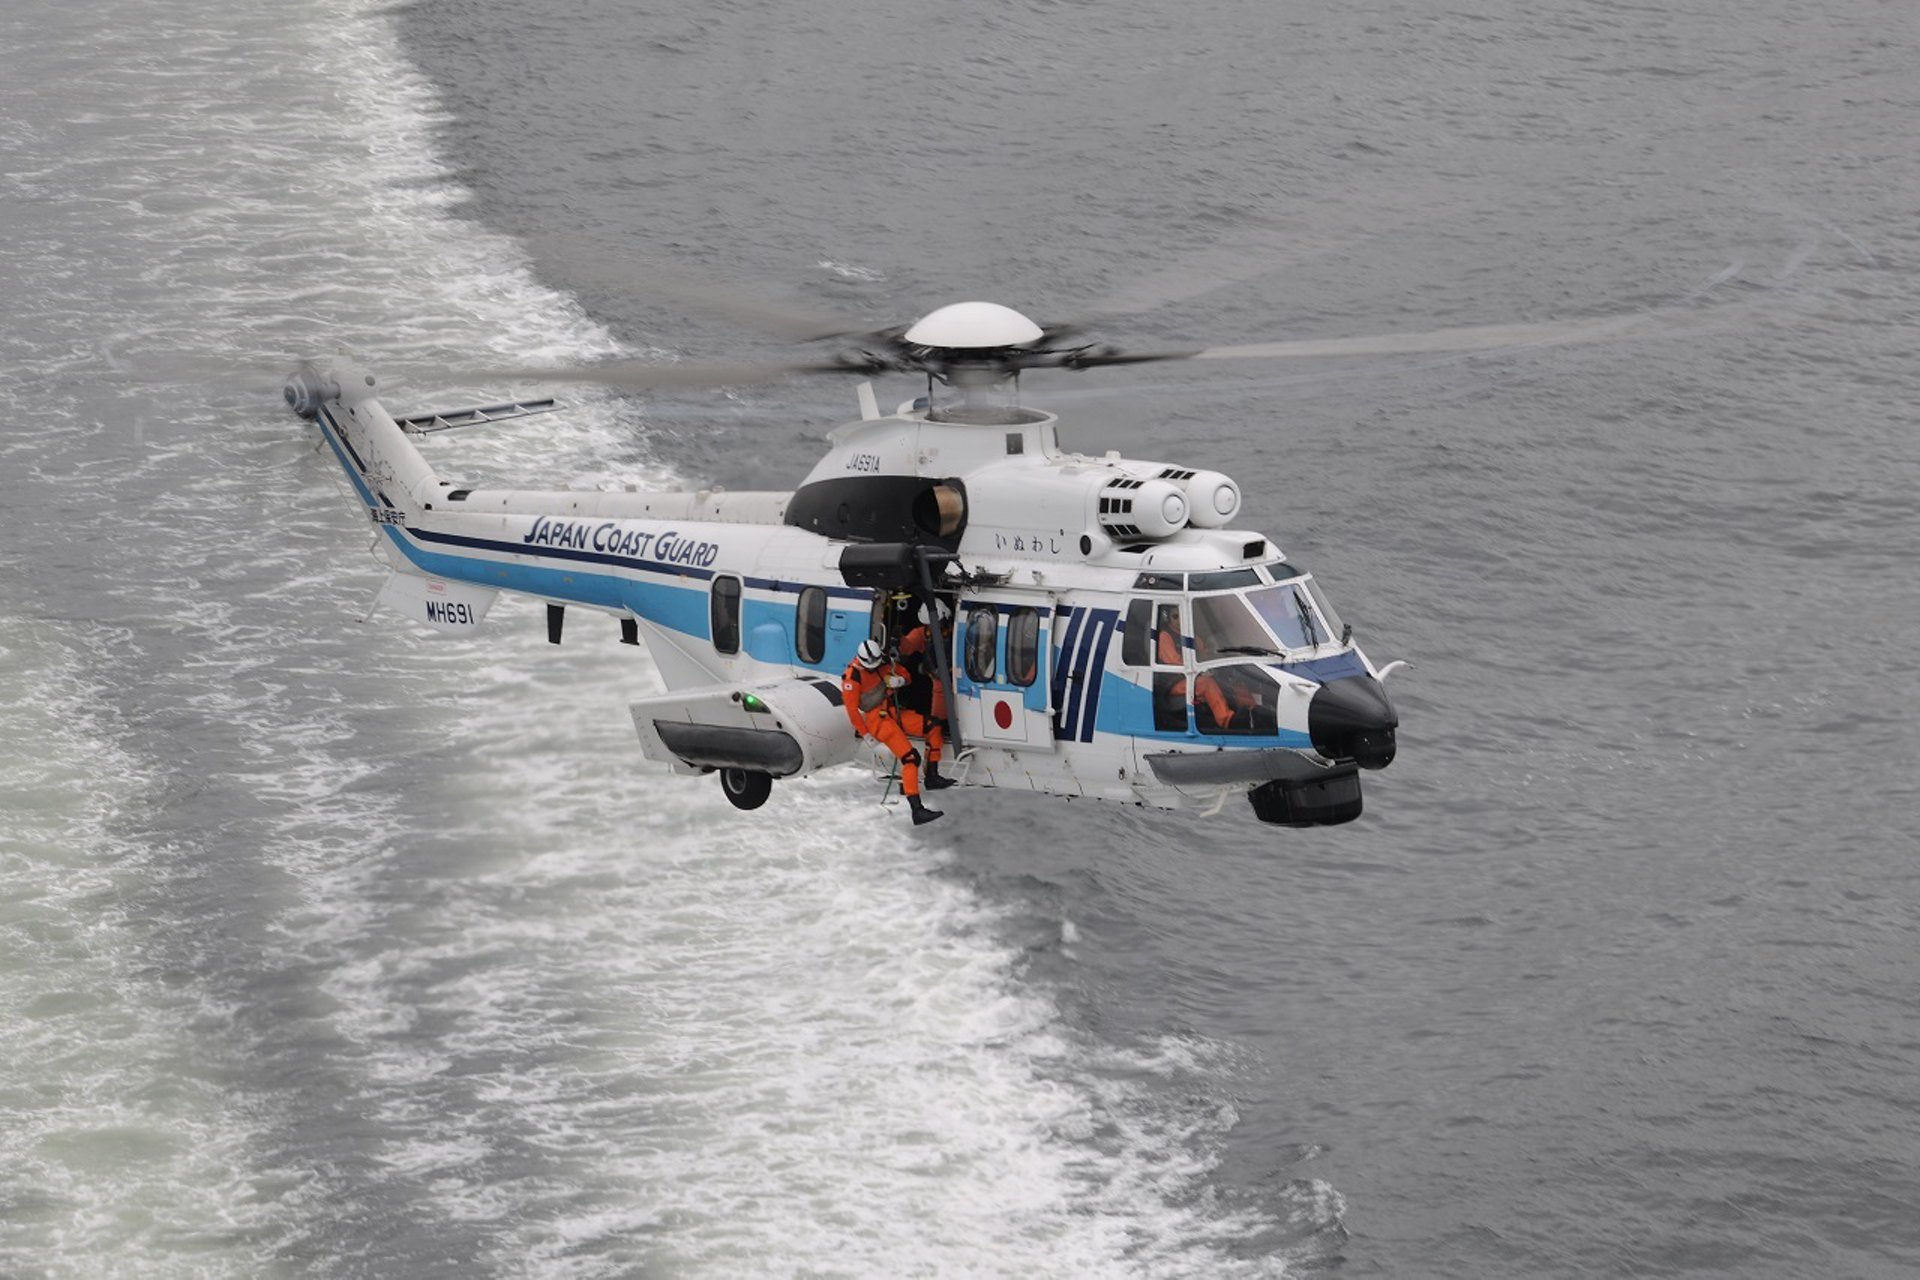 Japan Coast Guard (JCG) orders two additional H225 helicopters on 6 April 2020.